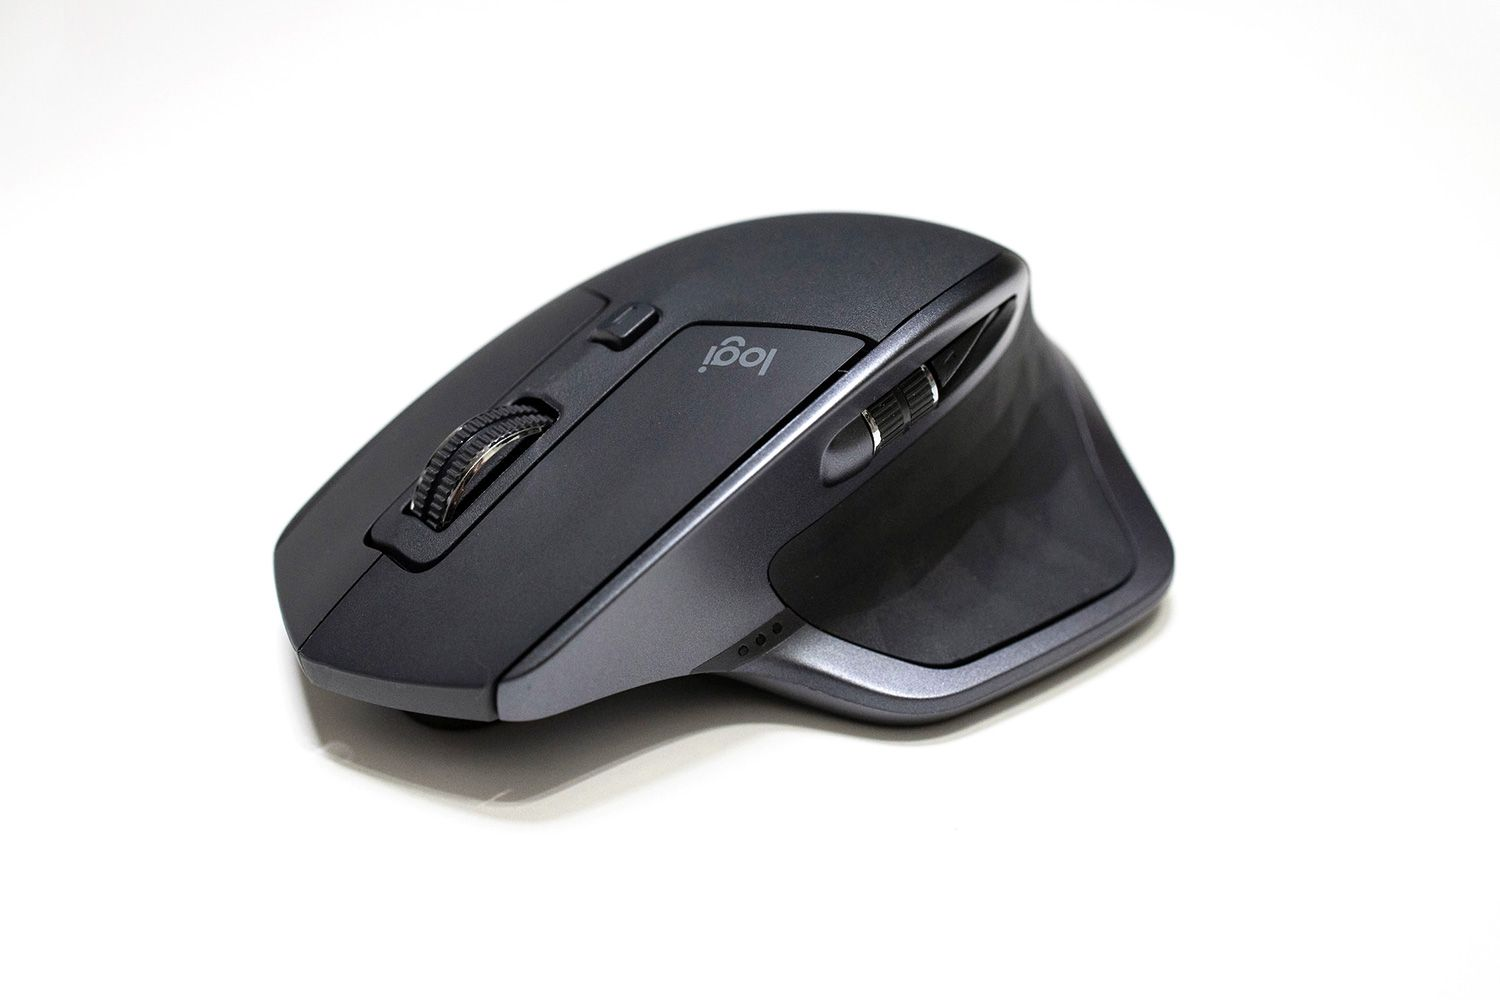 The 10 Best Wireless Mice of 2019